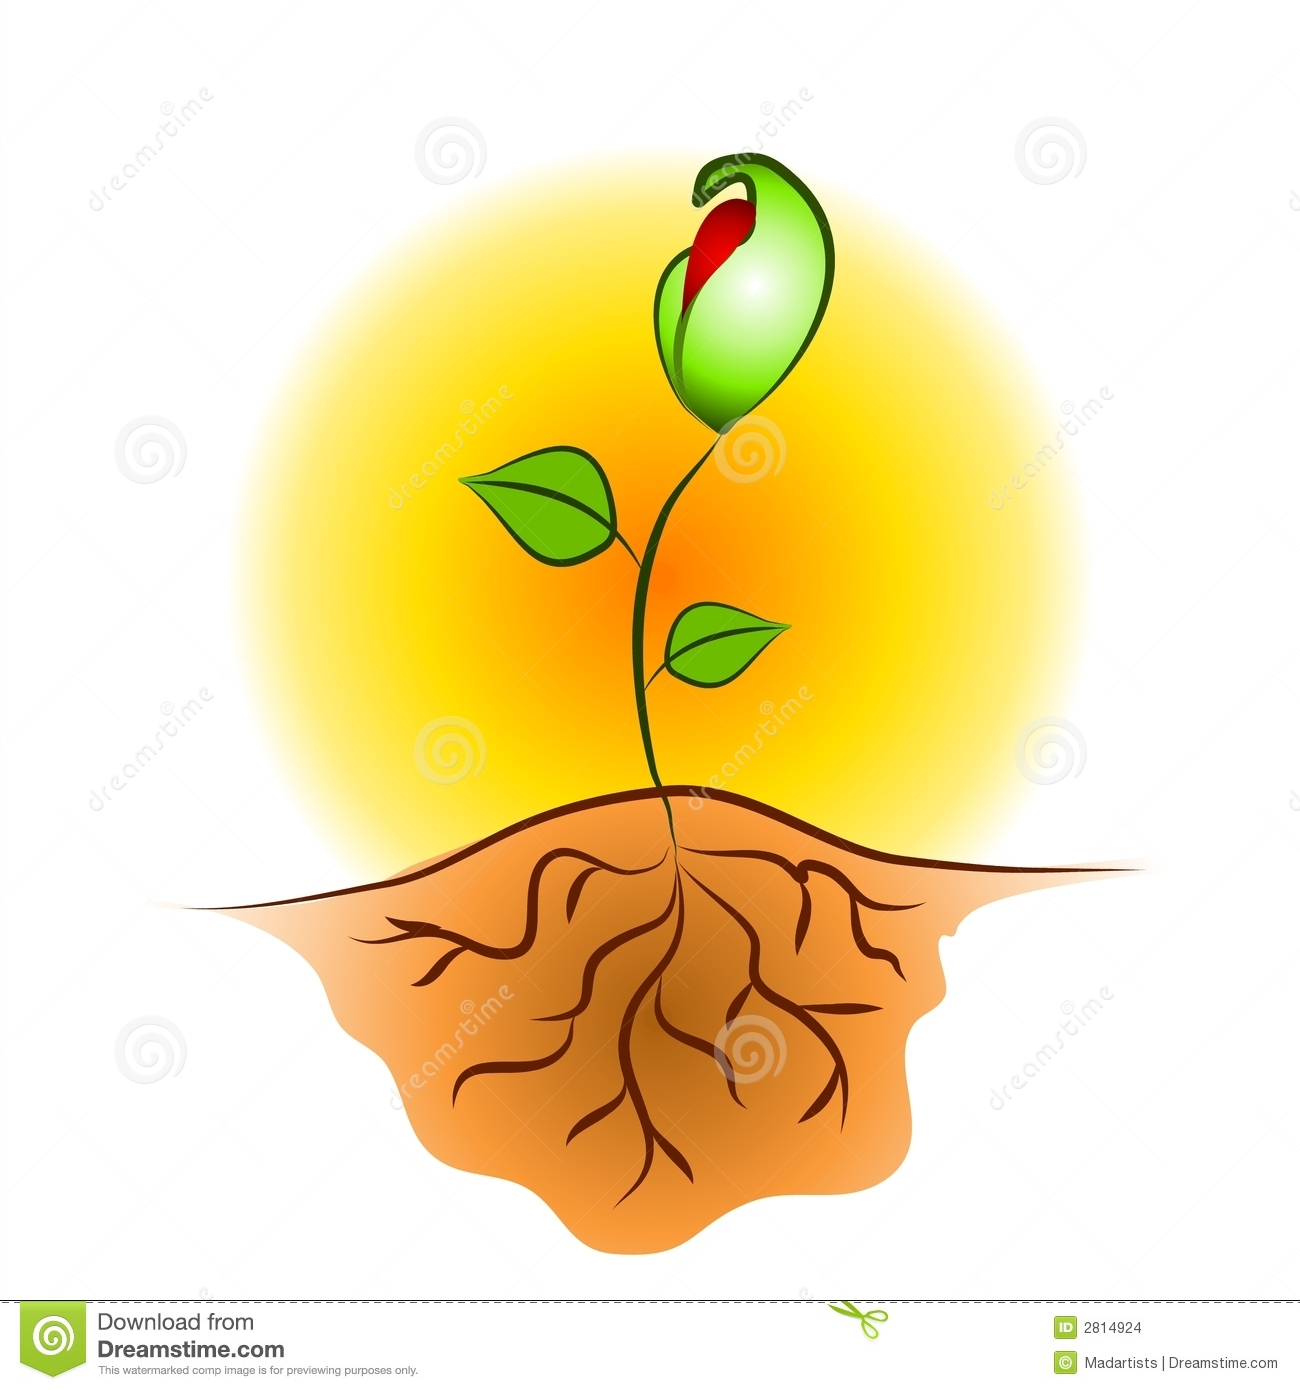 Seed roots clipart.